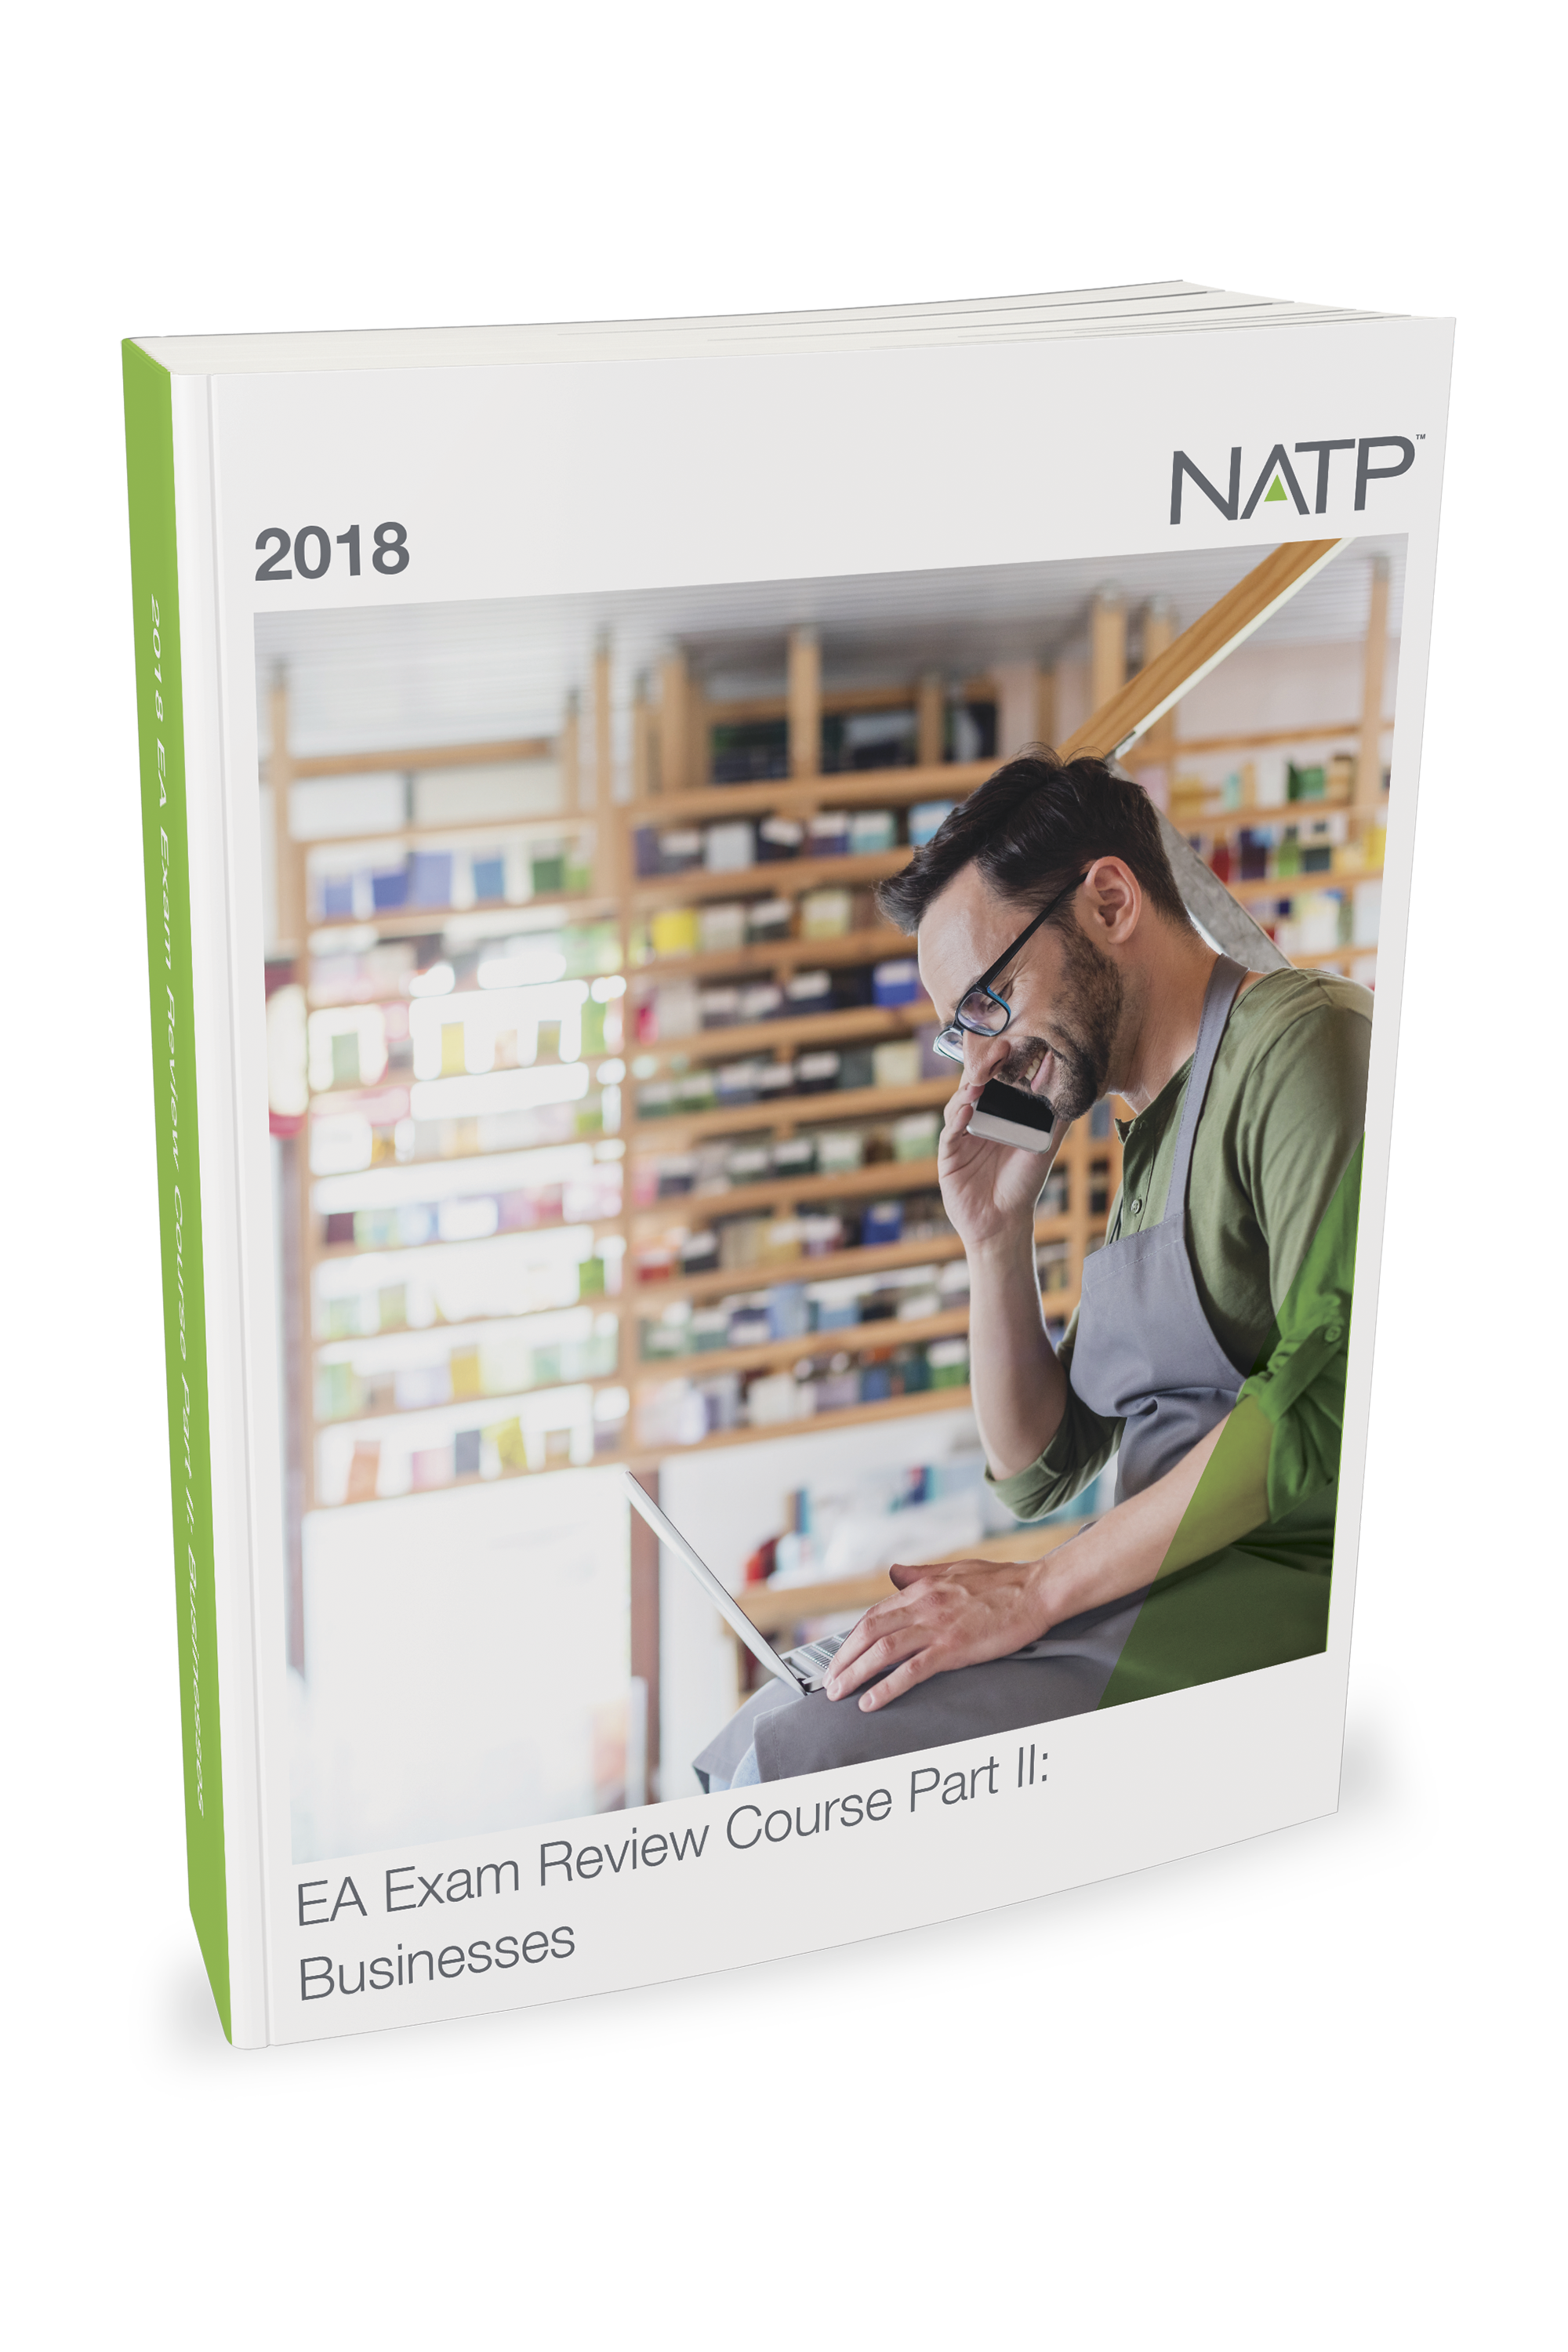 EA Exam Review Course Part II Textbook (2018) - #3804